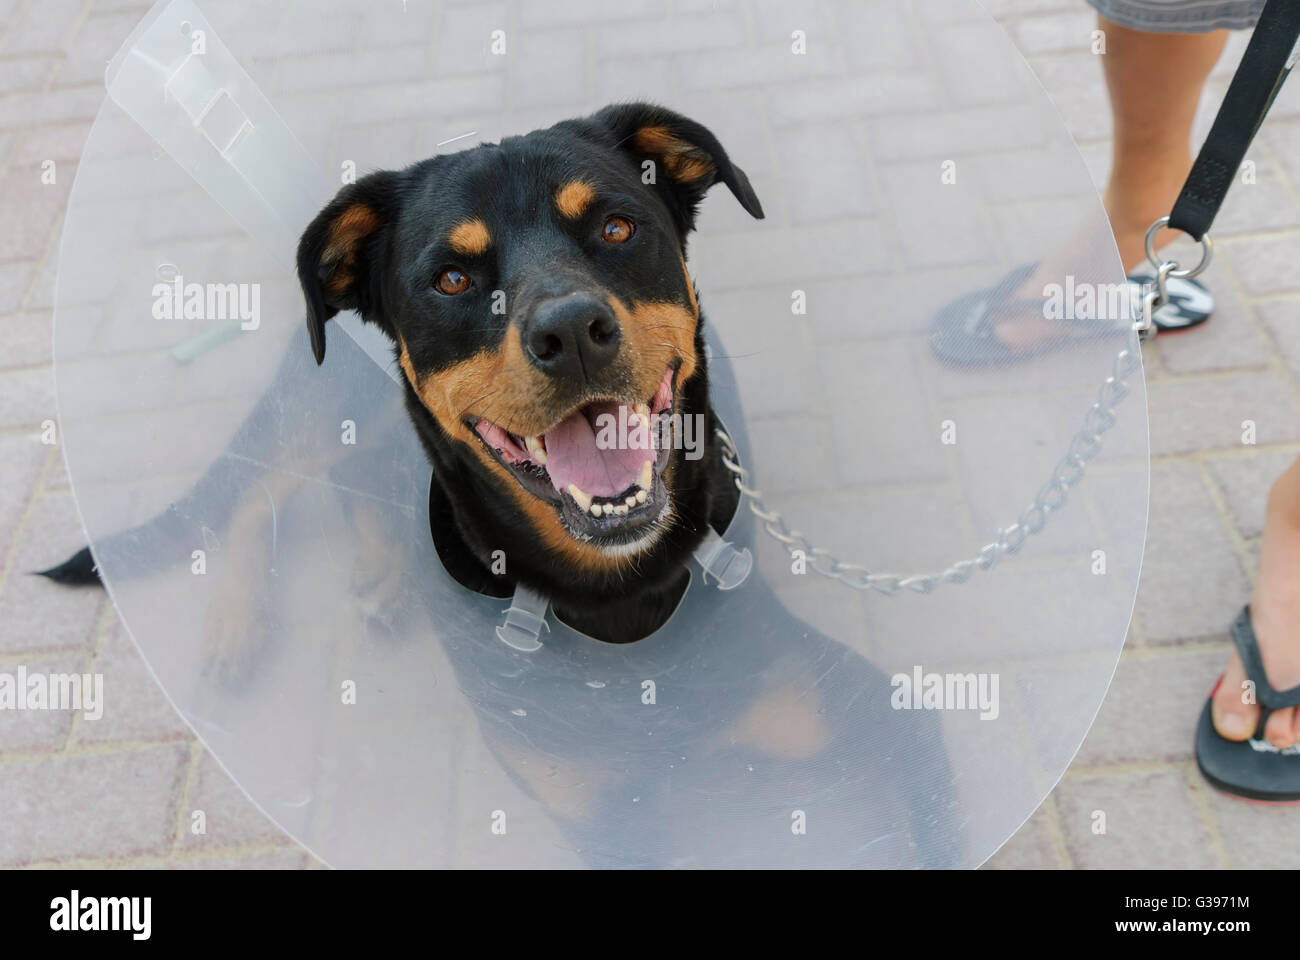 Dog (labrottie) wearing e-collar after surgery to prevents pet from licking and biting wounds, for faster healing. - Stock Image